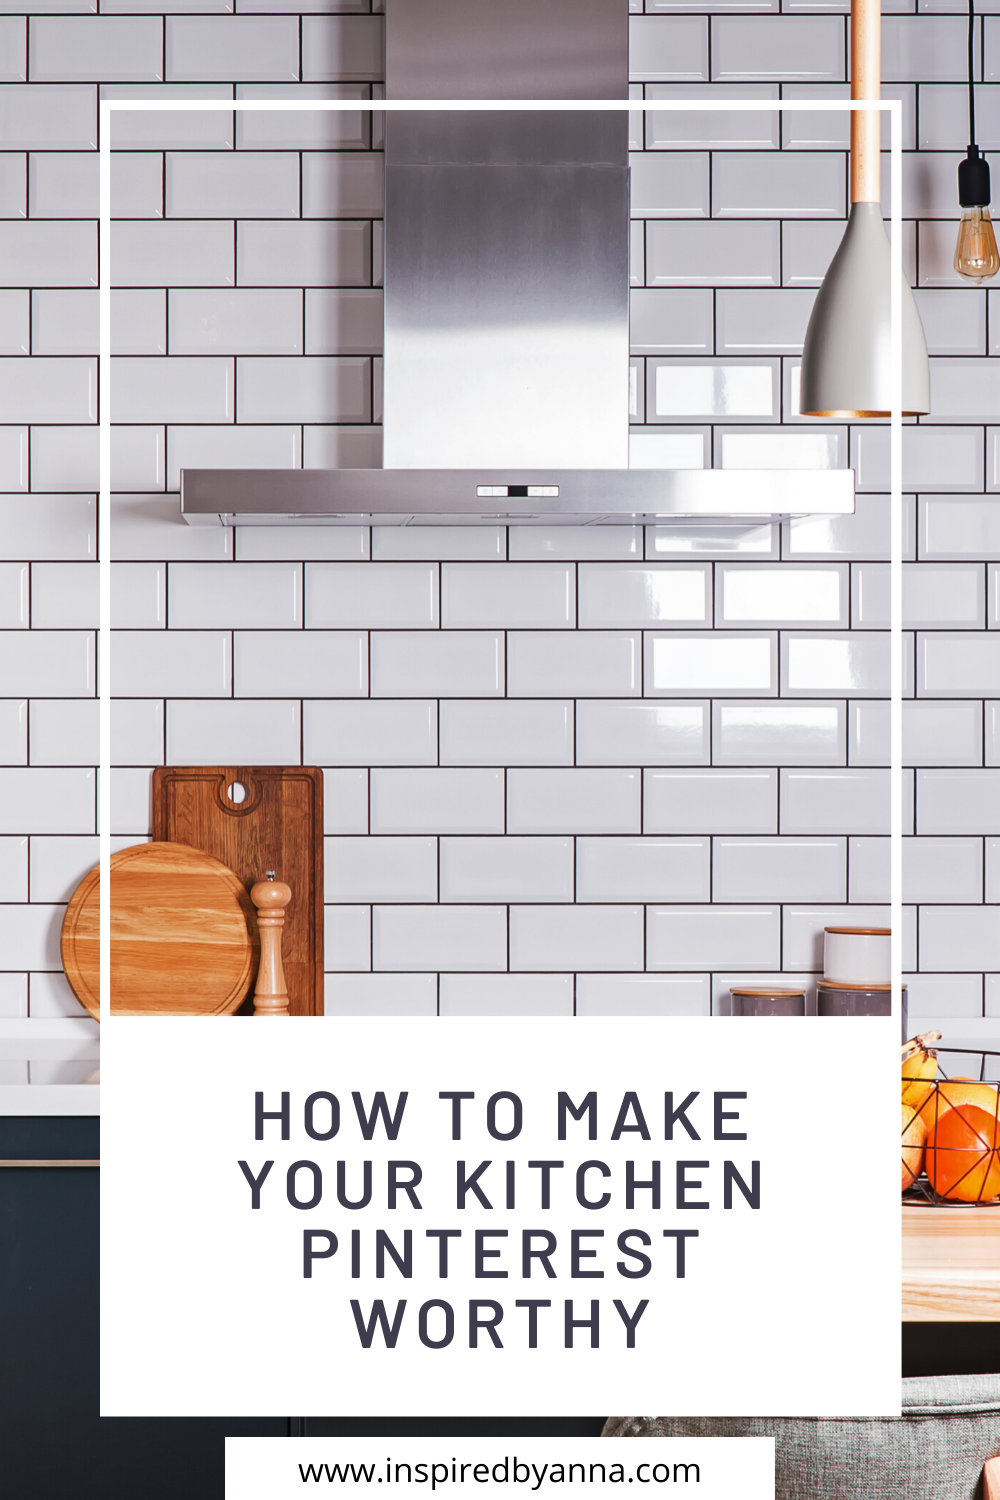 We all love gorgeous kitchen decor, here are easy DIY kitchen ideas on how you can upgrade your kitchen decor.  kitchen ideas| kitchen decor| kitchen decorating ideas| kitchen decor apartment #kitchendecor #kitchendecoratingideas